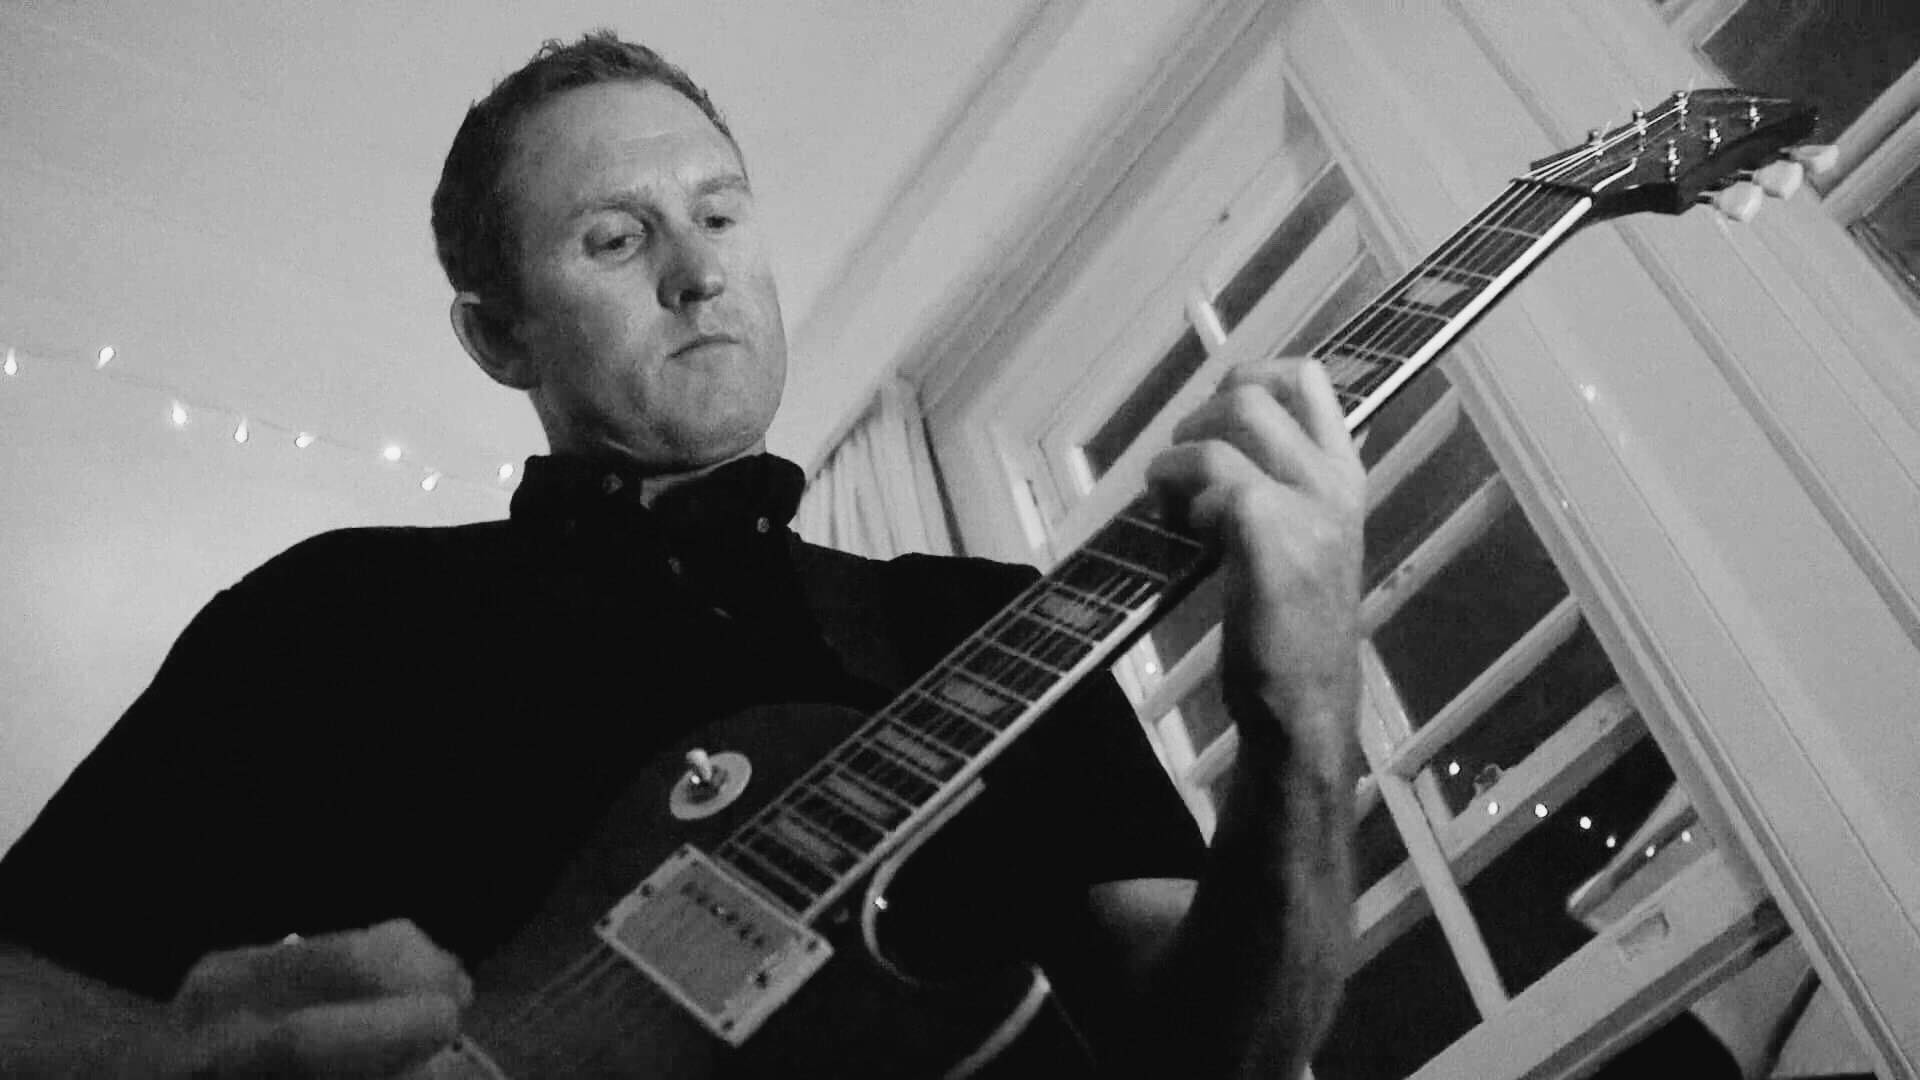 Wayne Bowman - Lead guitar and backing vocals